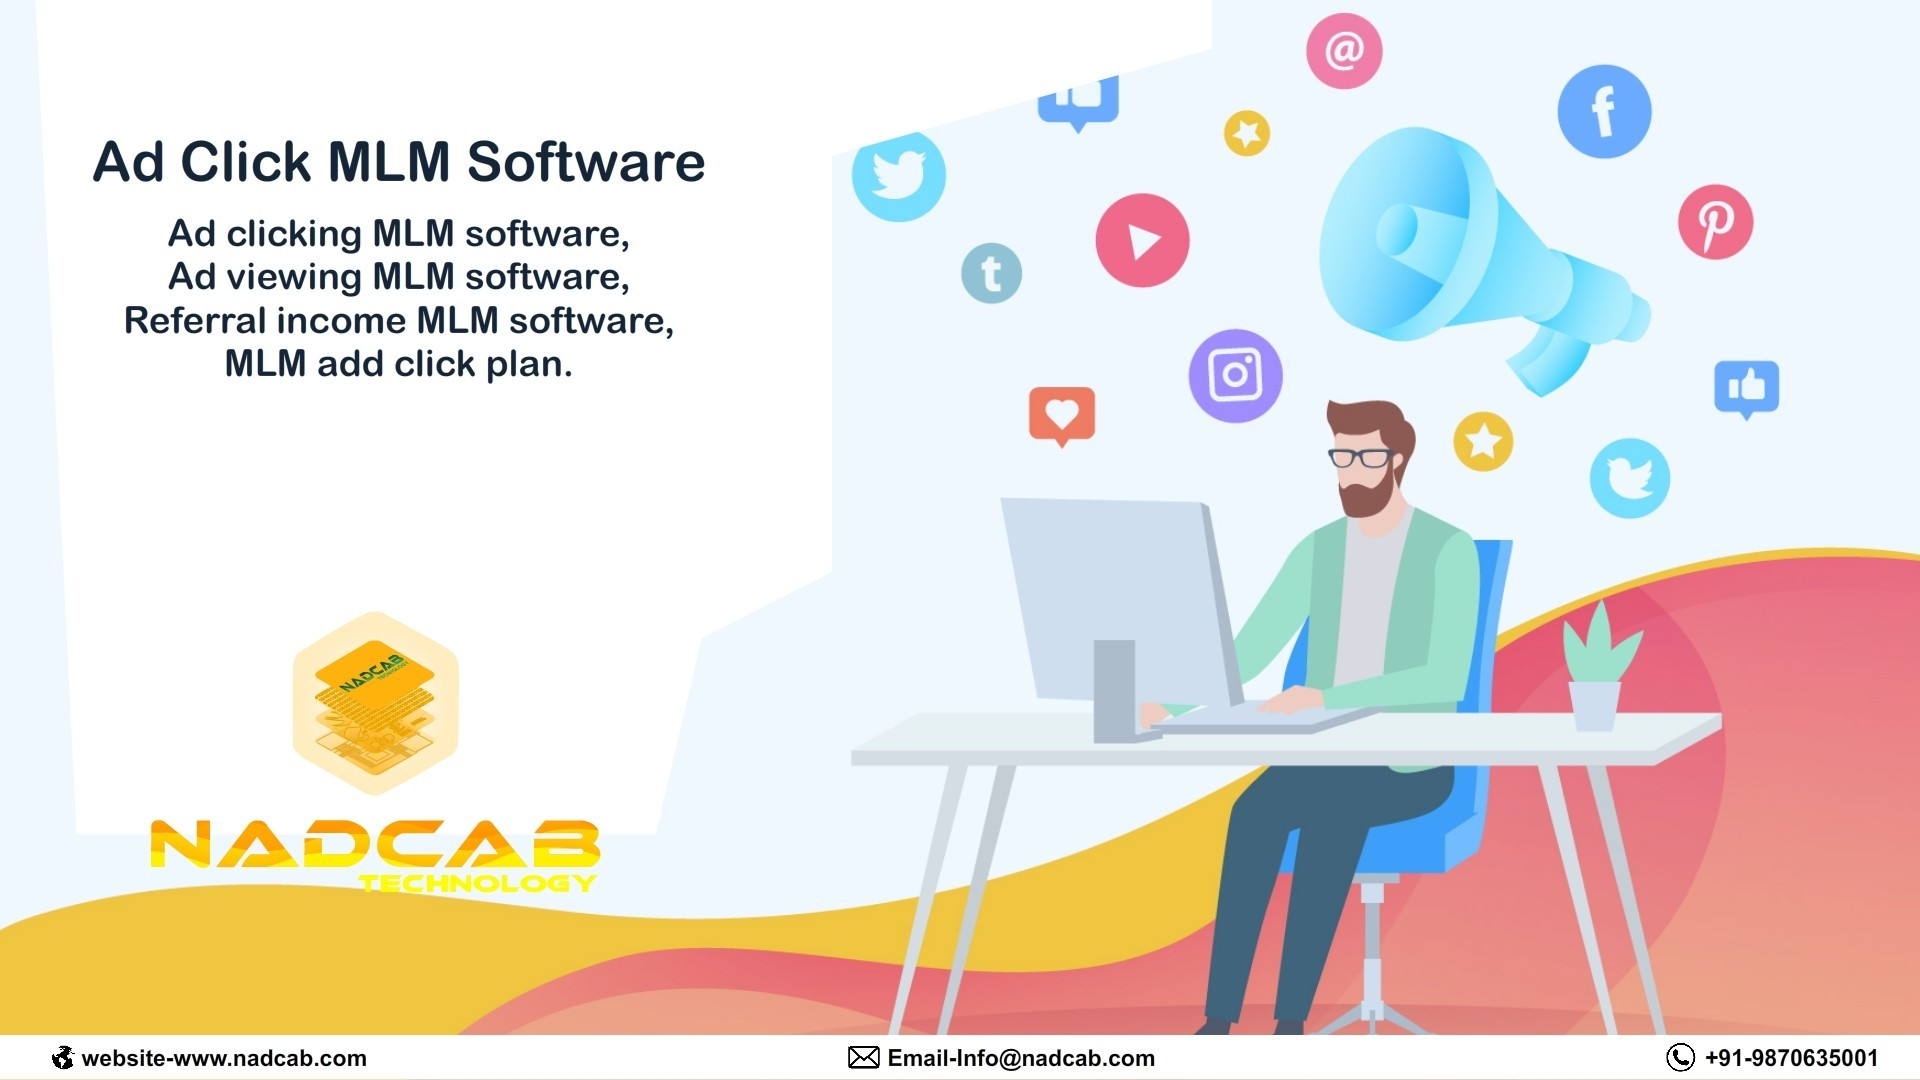 AD Click MLM Software